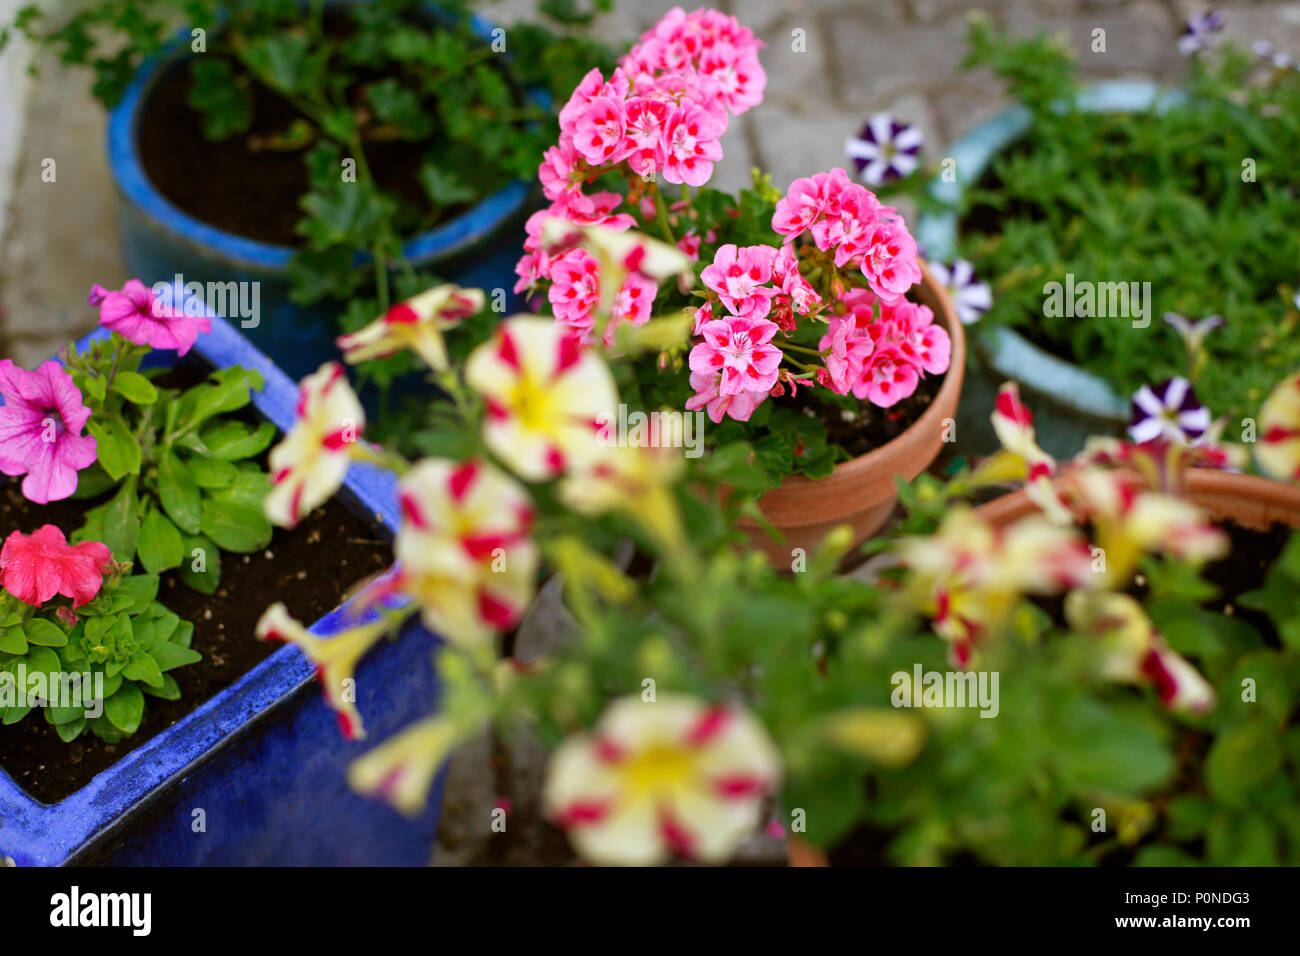 Potted Summer Plants Petunias And Geraniums Stock Photo